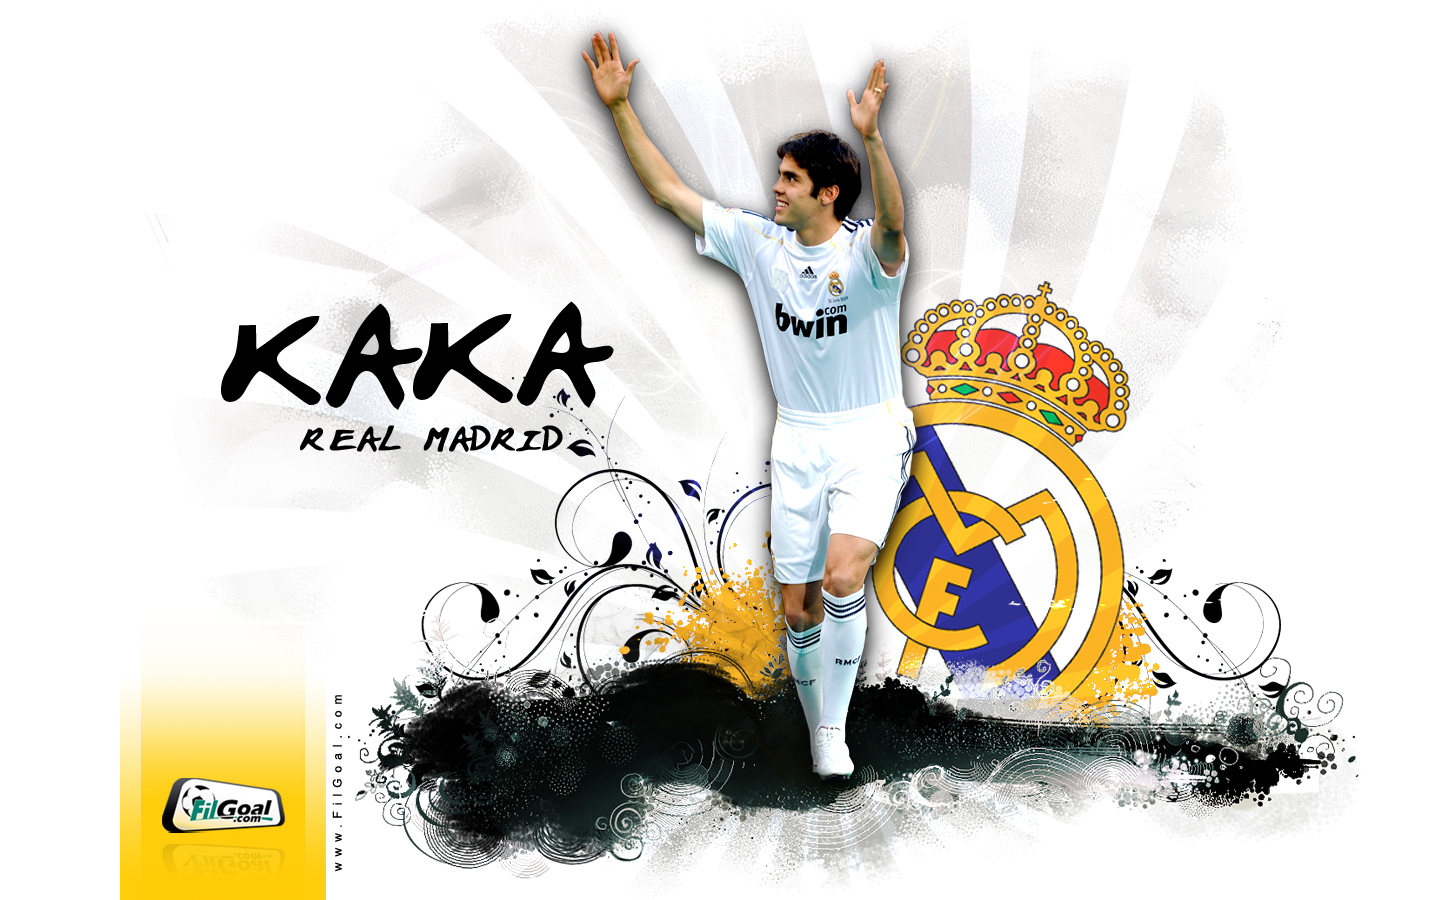 ricardo kaka wallpaper 2012